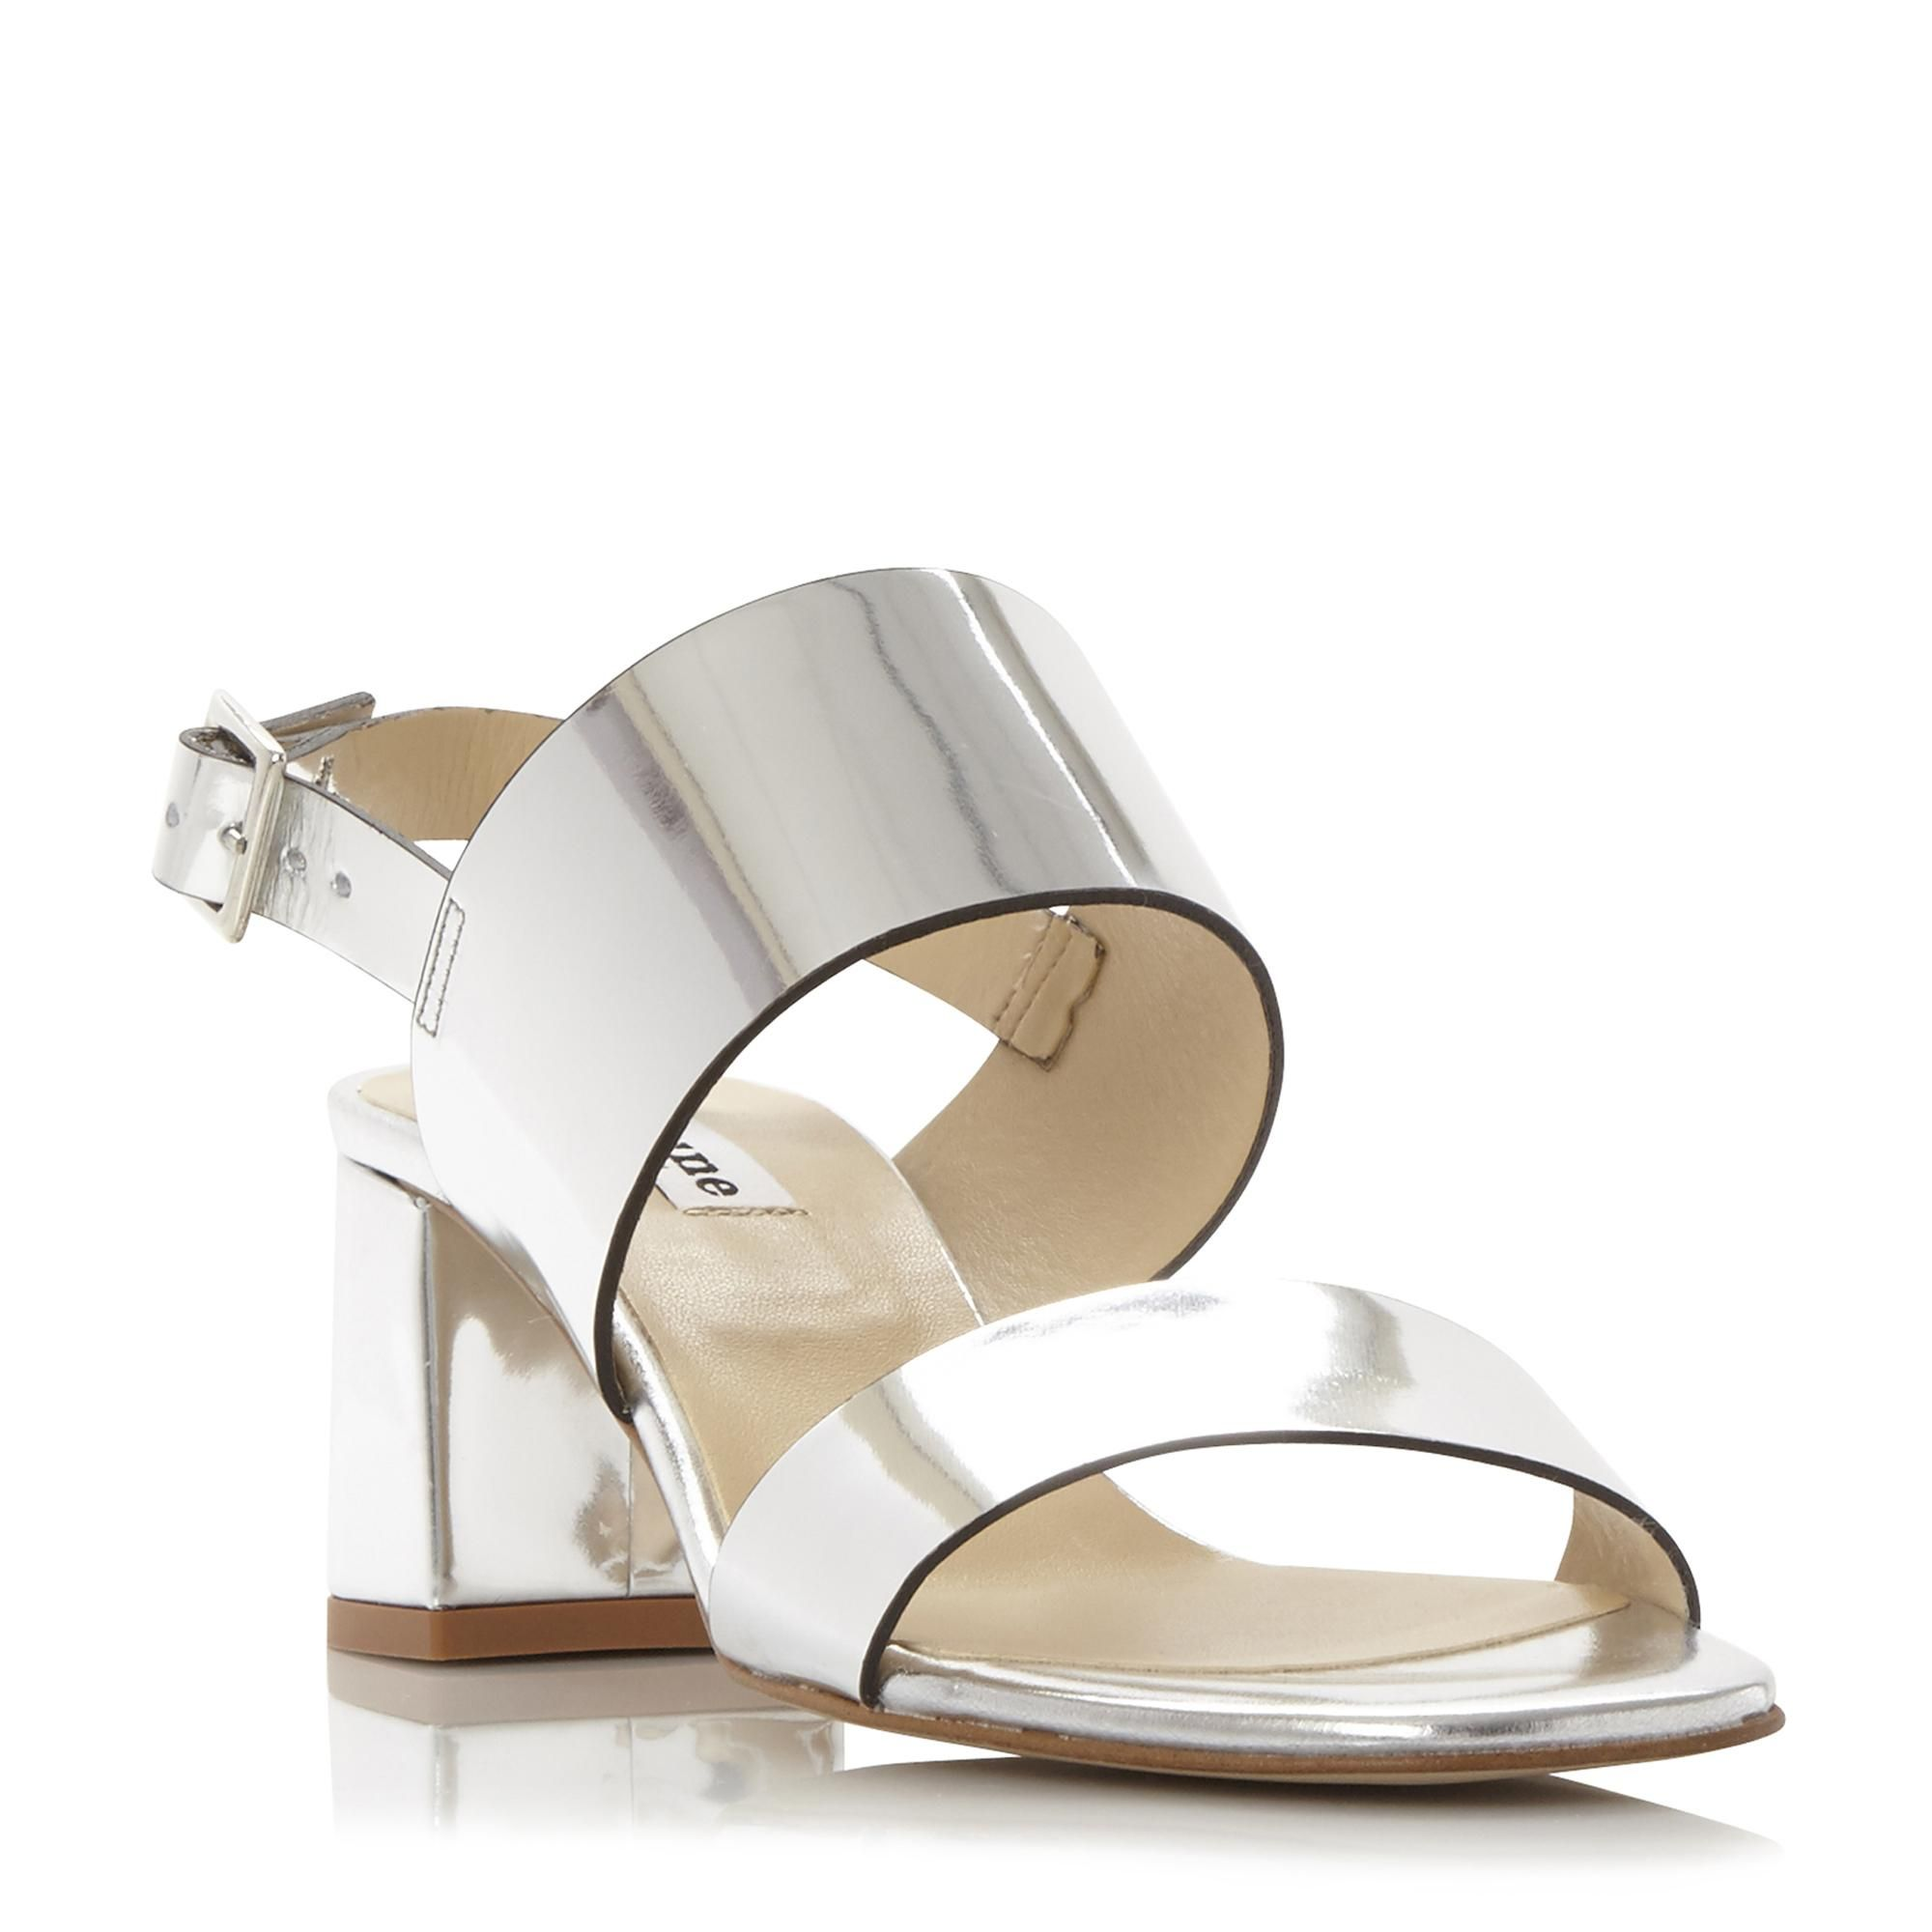 3c8ca93afe DUNE LADIES JESTER - Flared Block Heel Sandal - silver | Dune Shoes Online